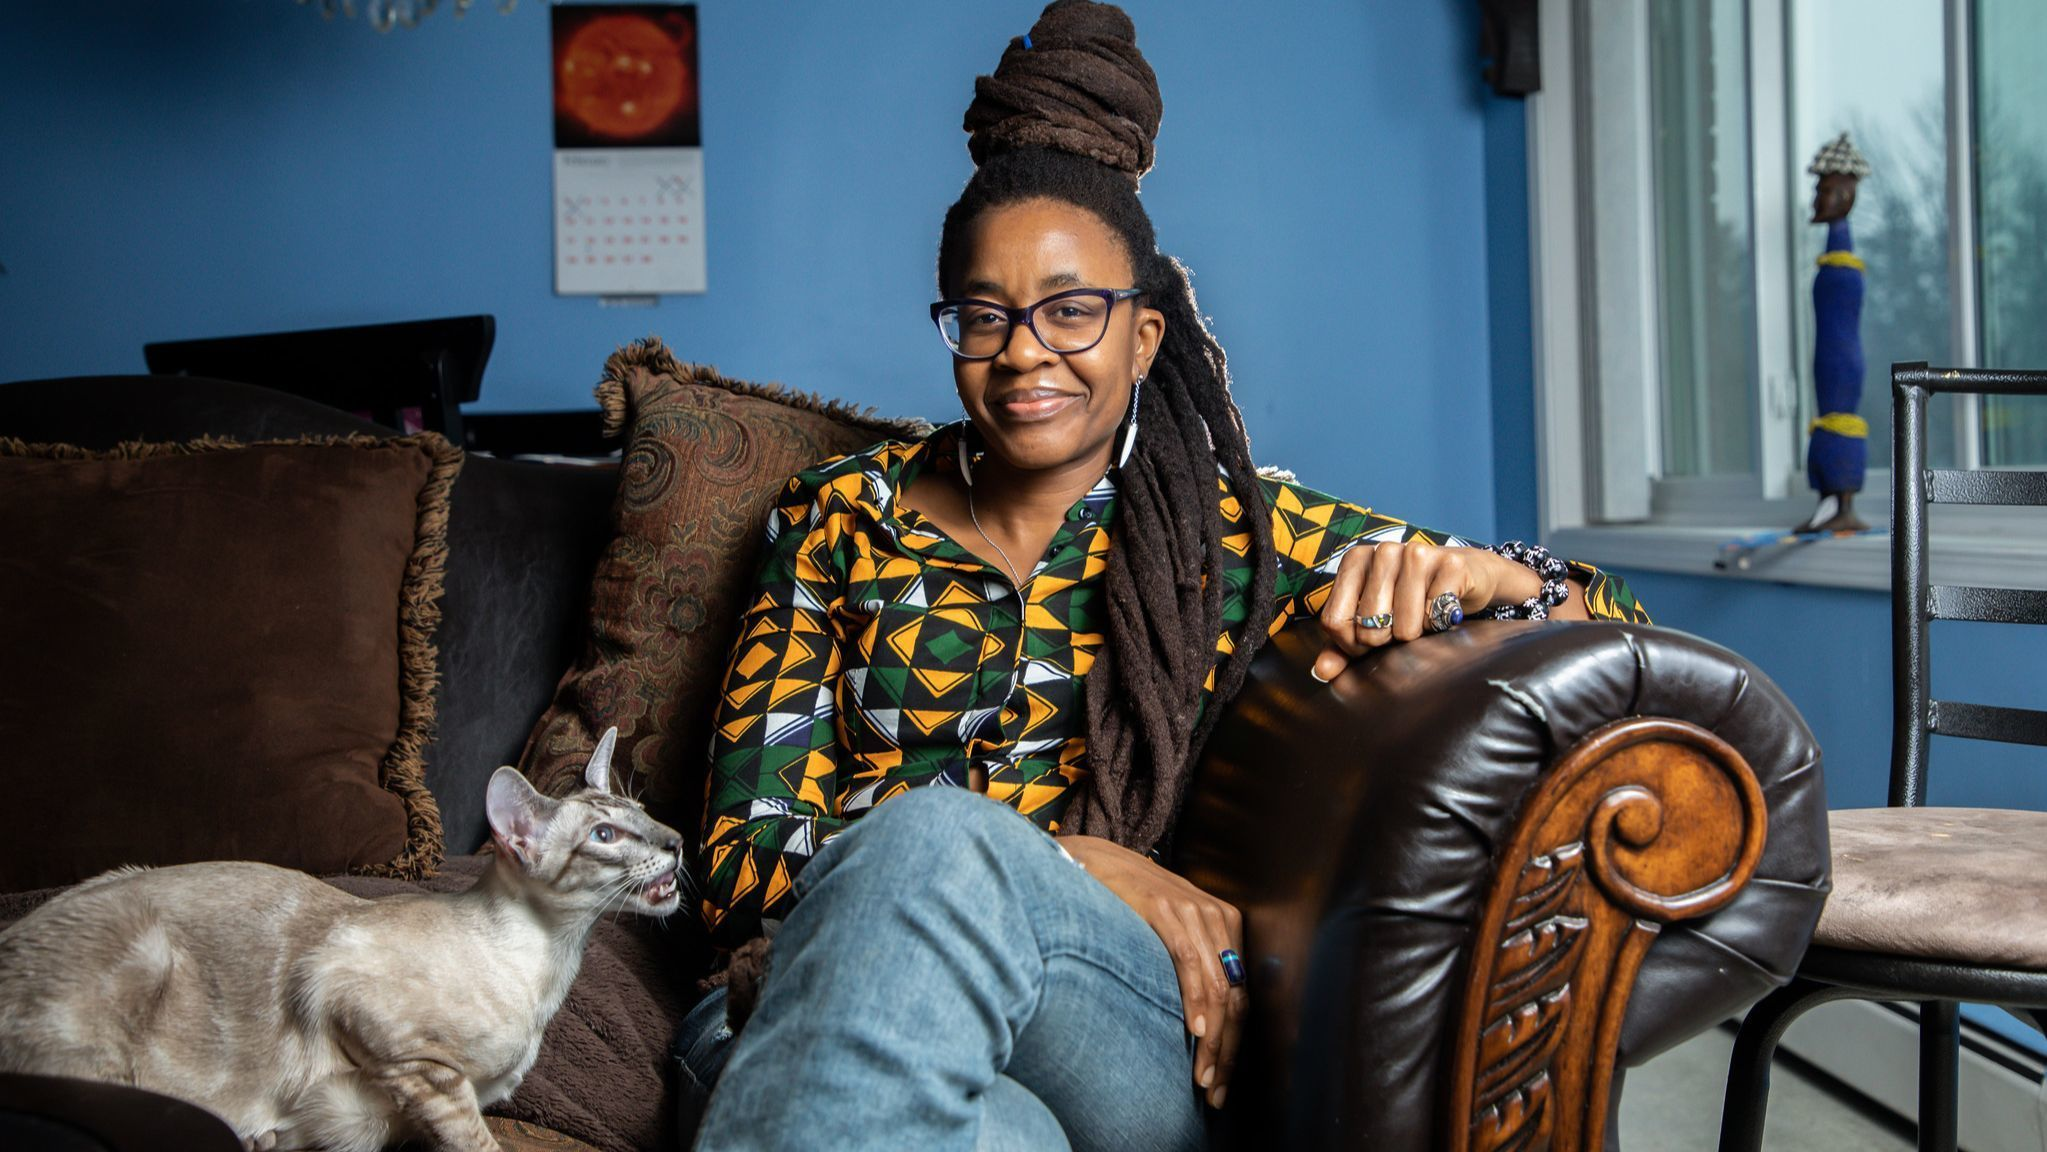 Comic book sheroes: Black women writers bring authentic voices, new audience to comics scene